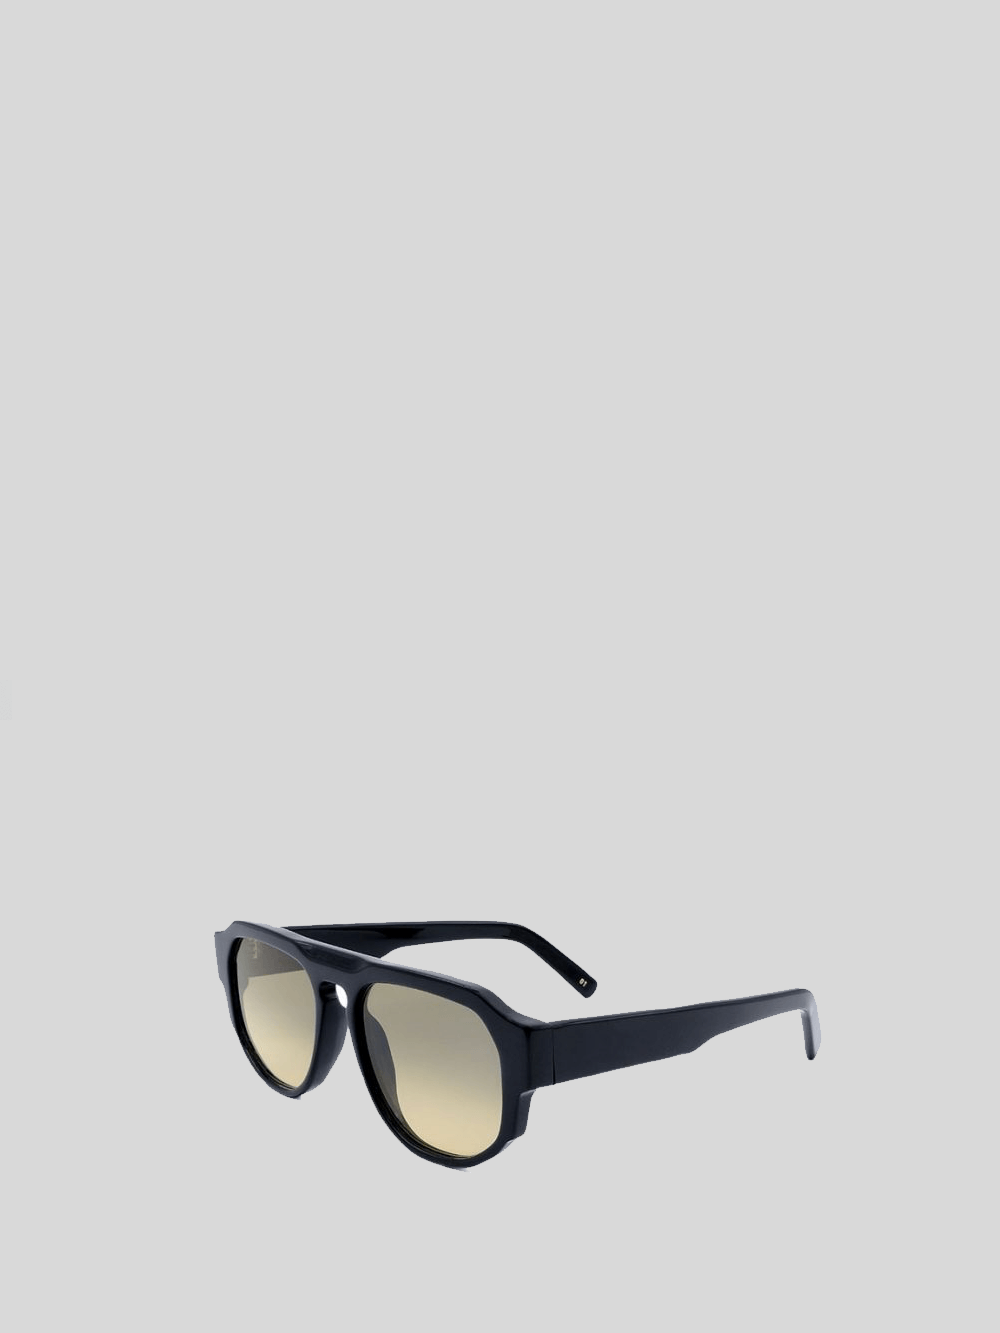 Asmara II Black 01 Yellow Photocromic 55' Sunglasses L.G.R.